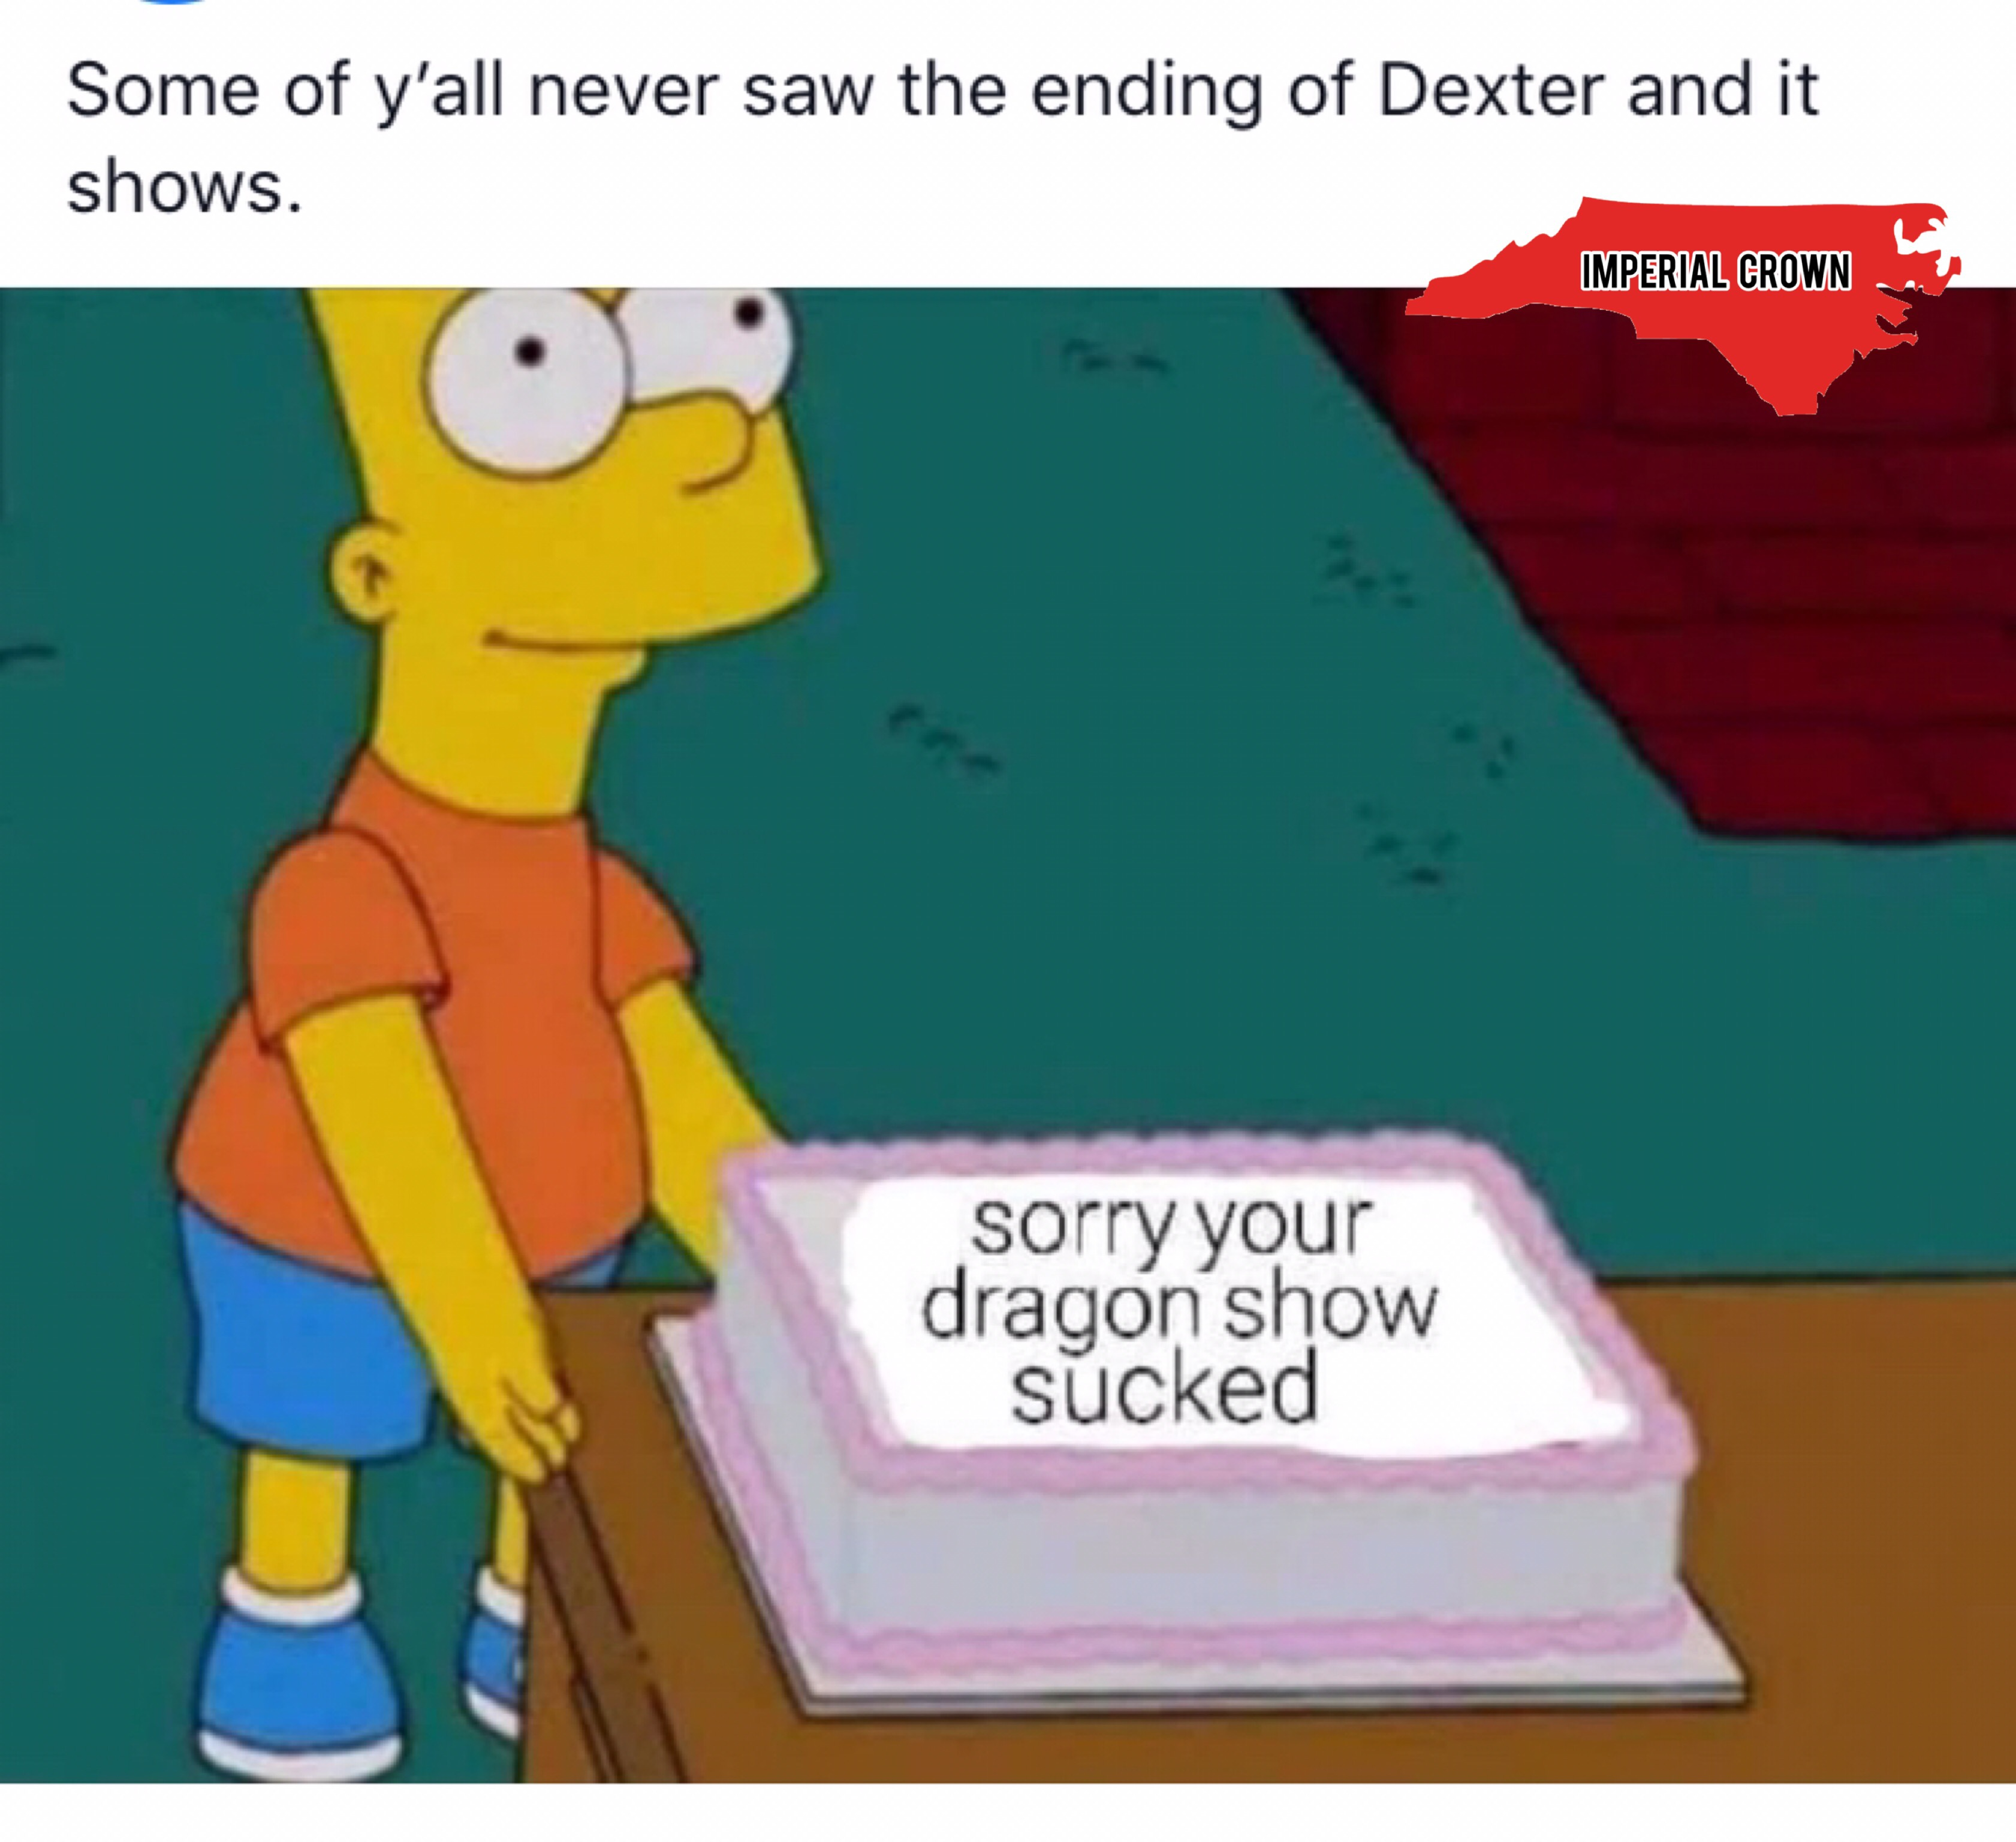 Some of y'all never saw the ending of dexter and it shows….